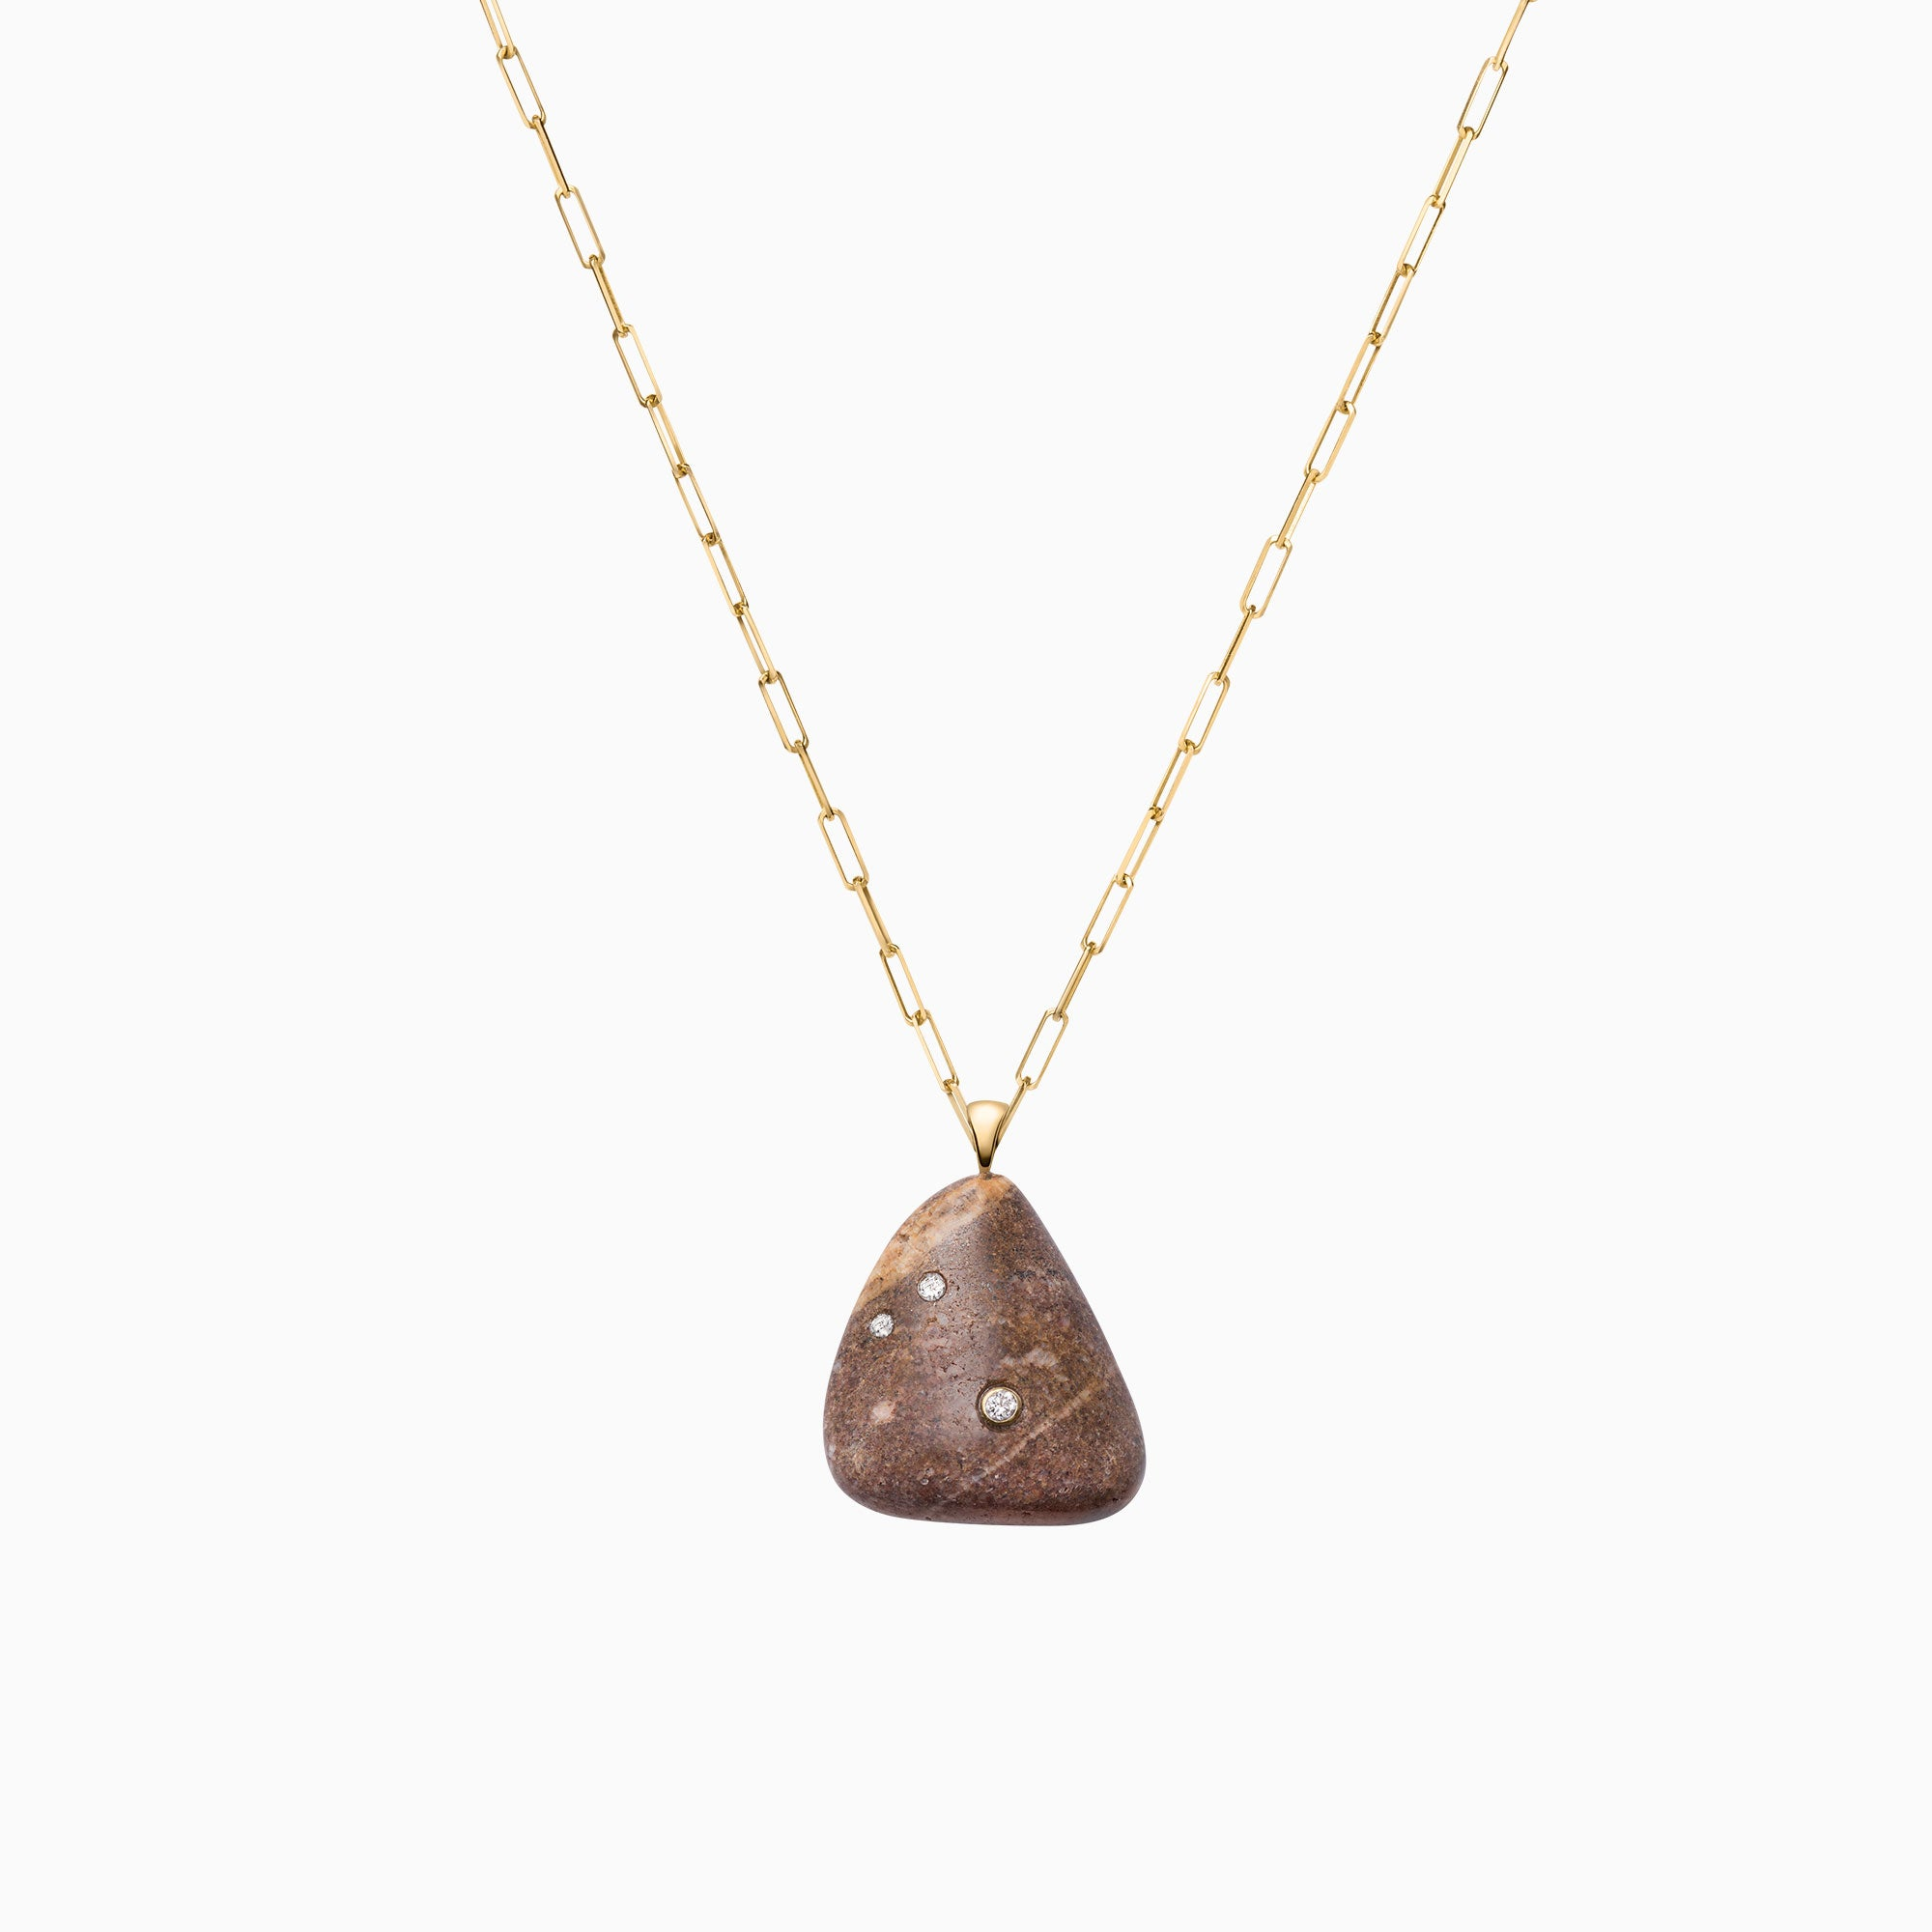 Nessa Designs Jewelry | Necklaces | Atlantic Pebble & Diamond Pendant